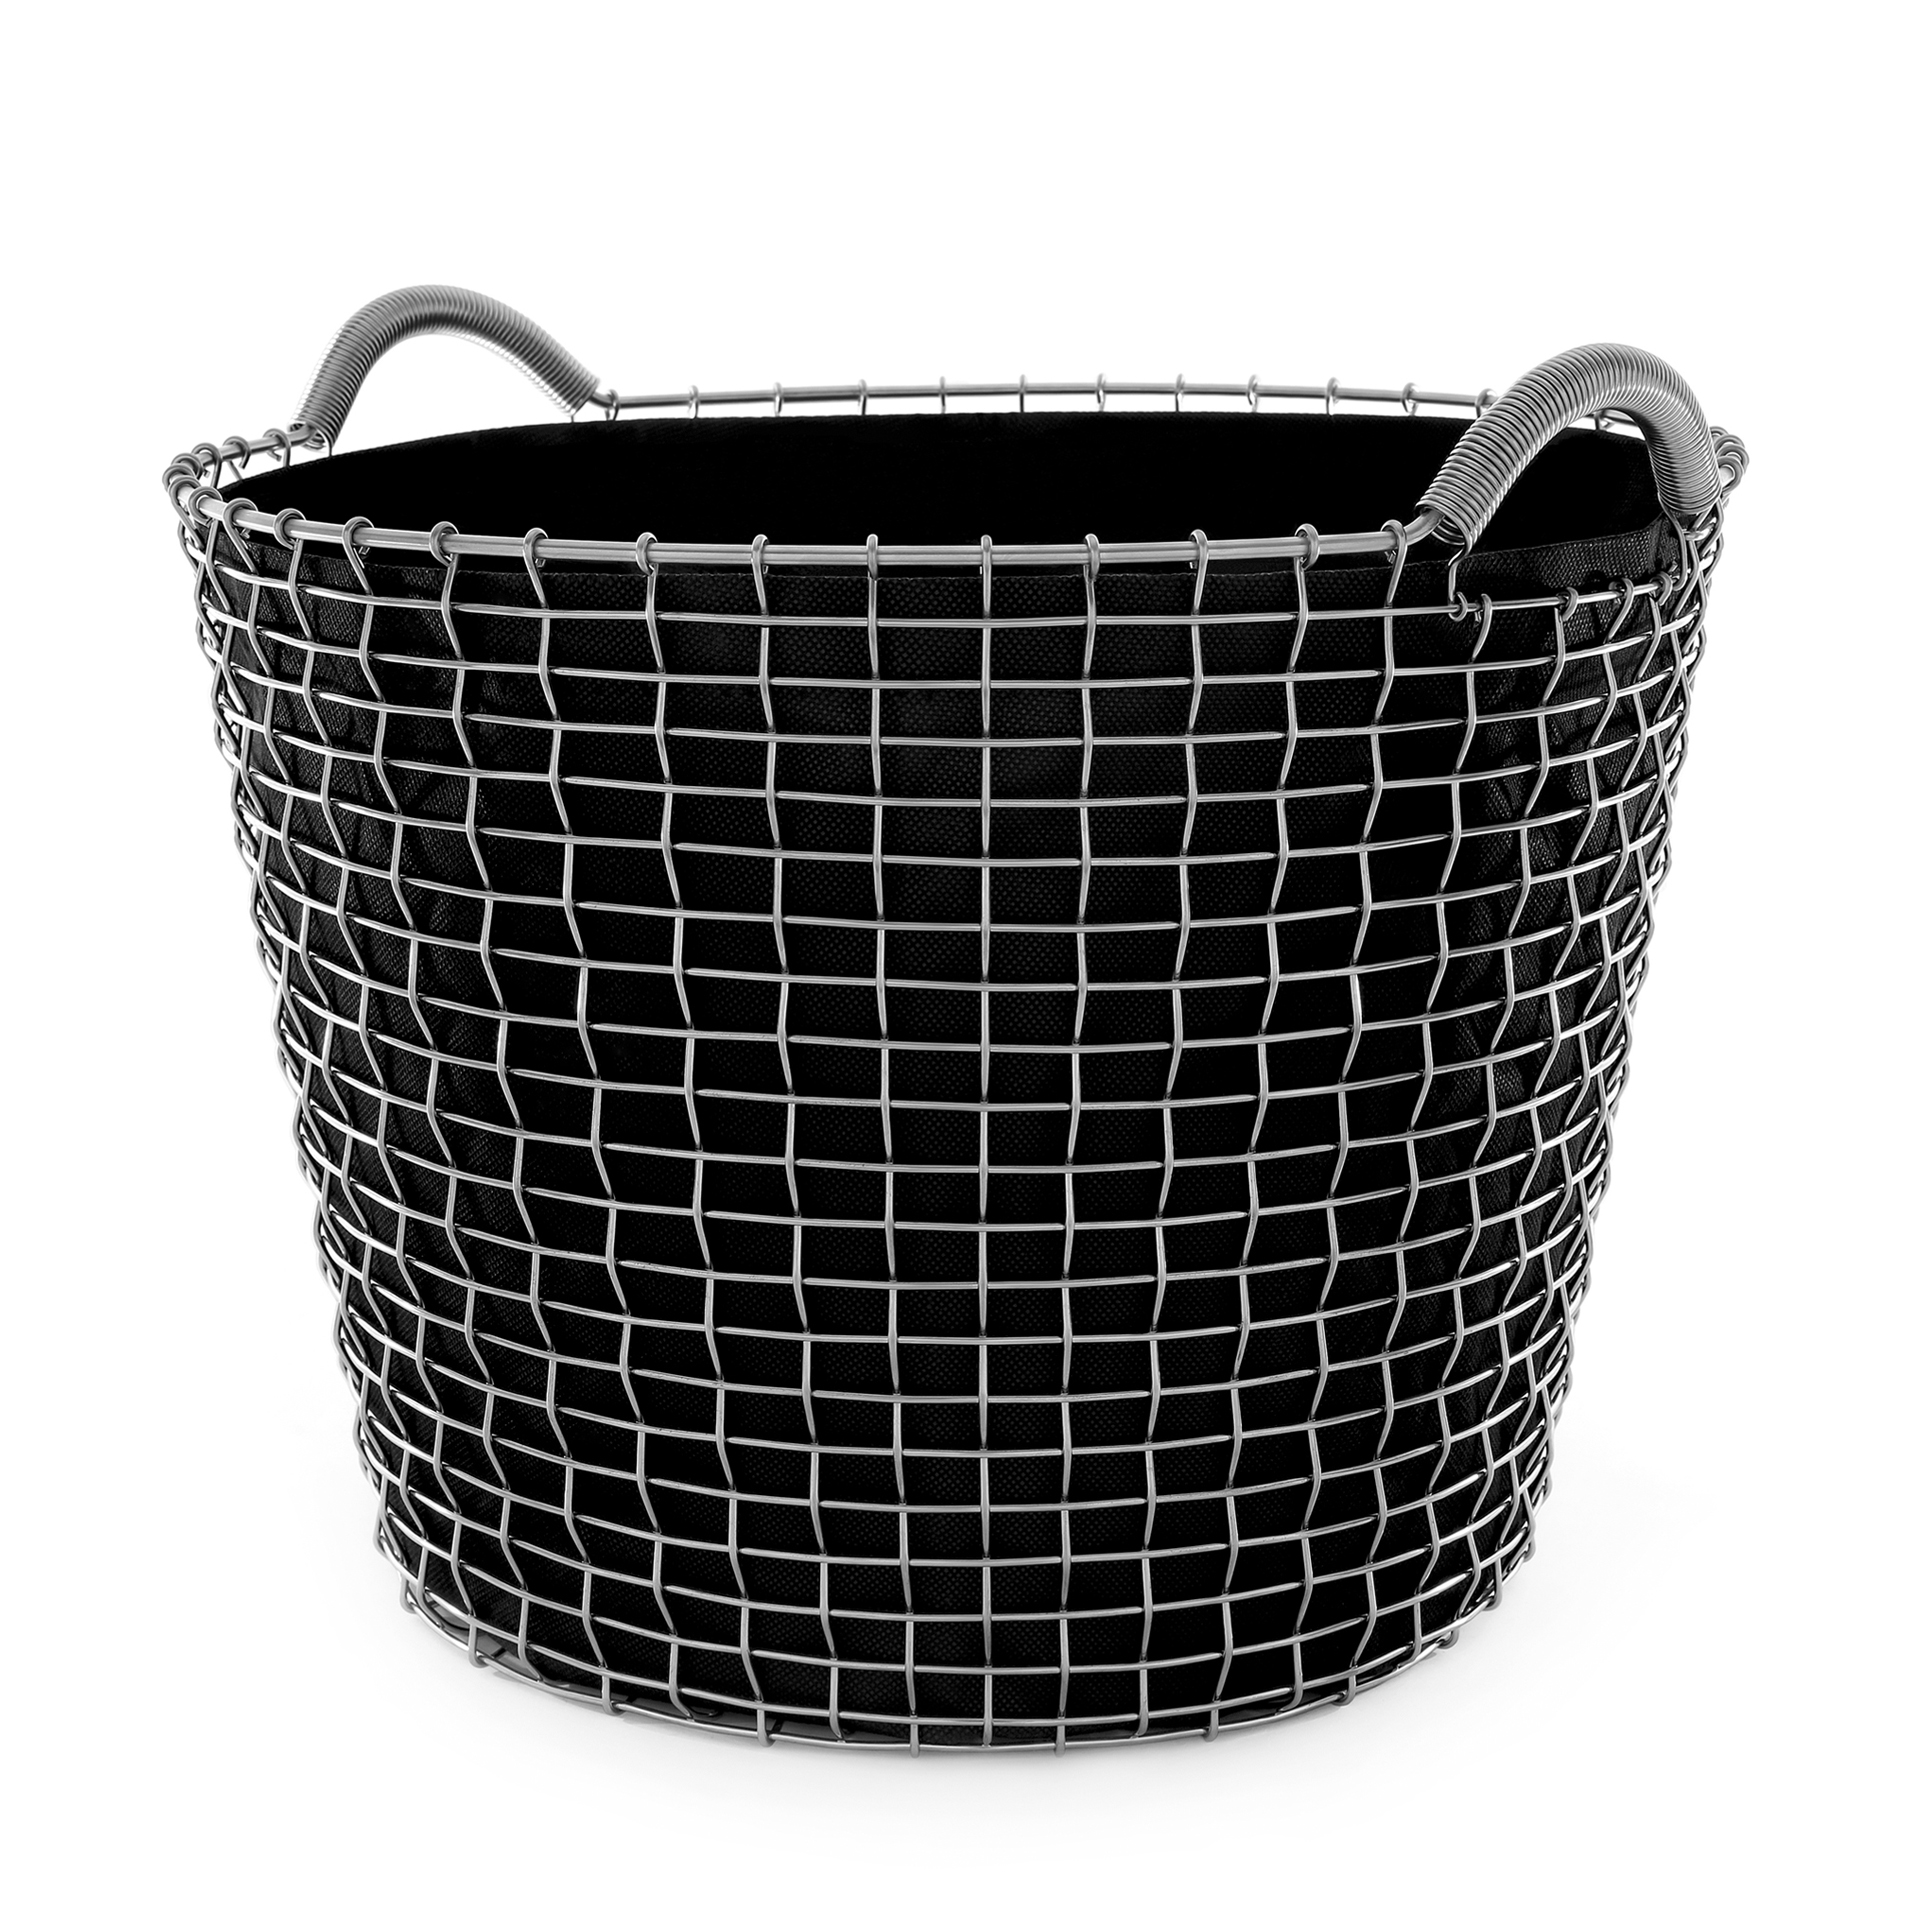 Planting bag for Korbo classic 24 perfect for outdoor planting